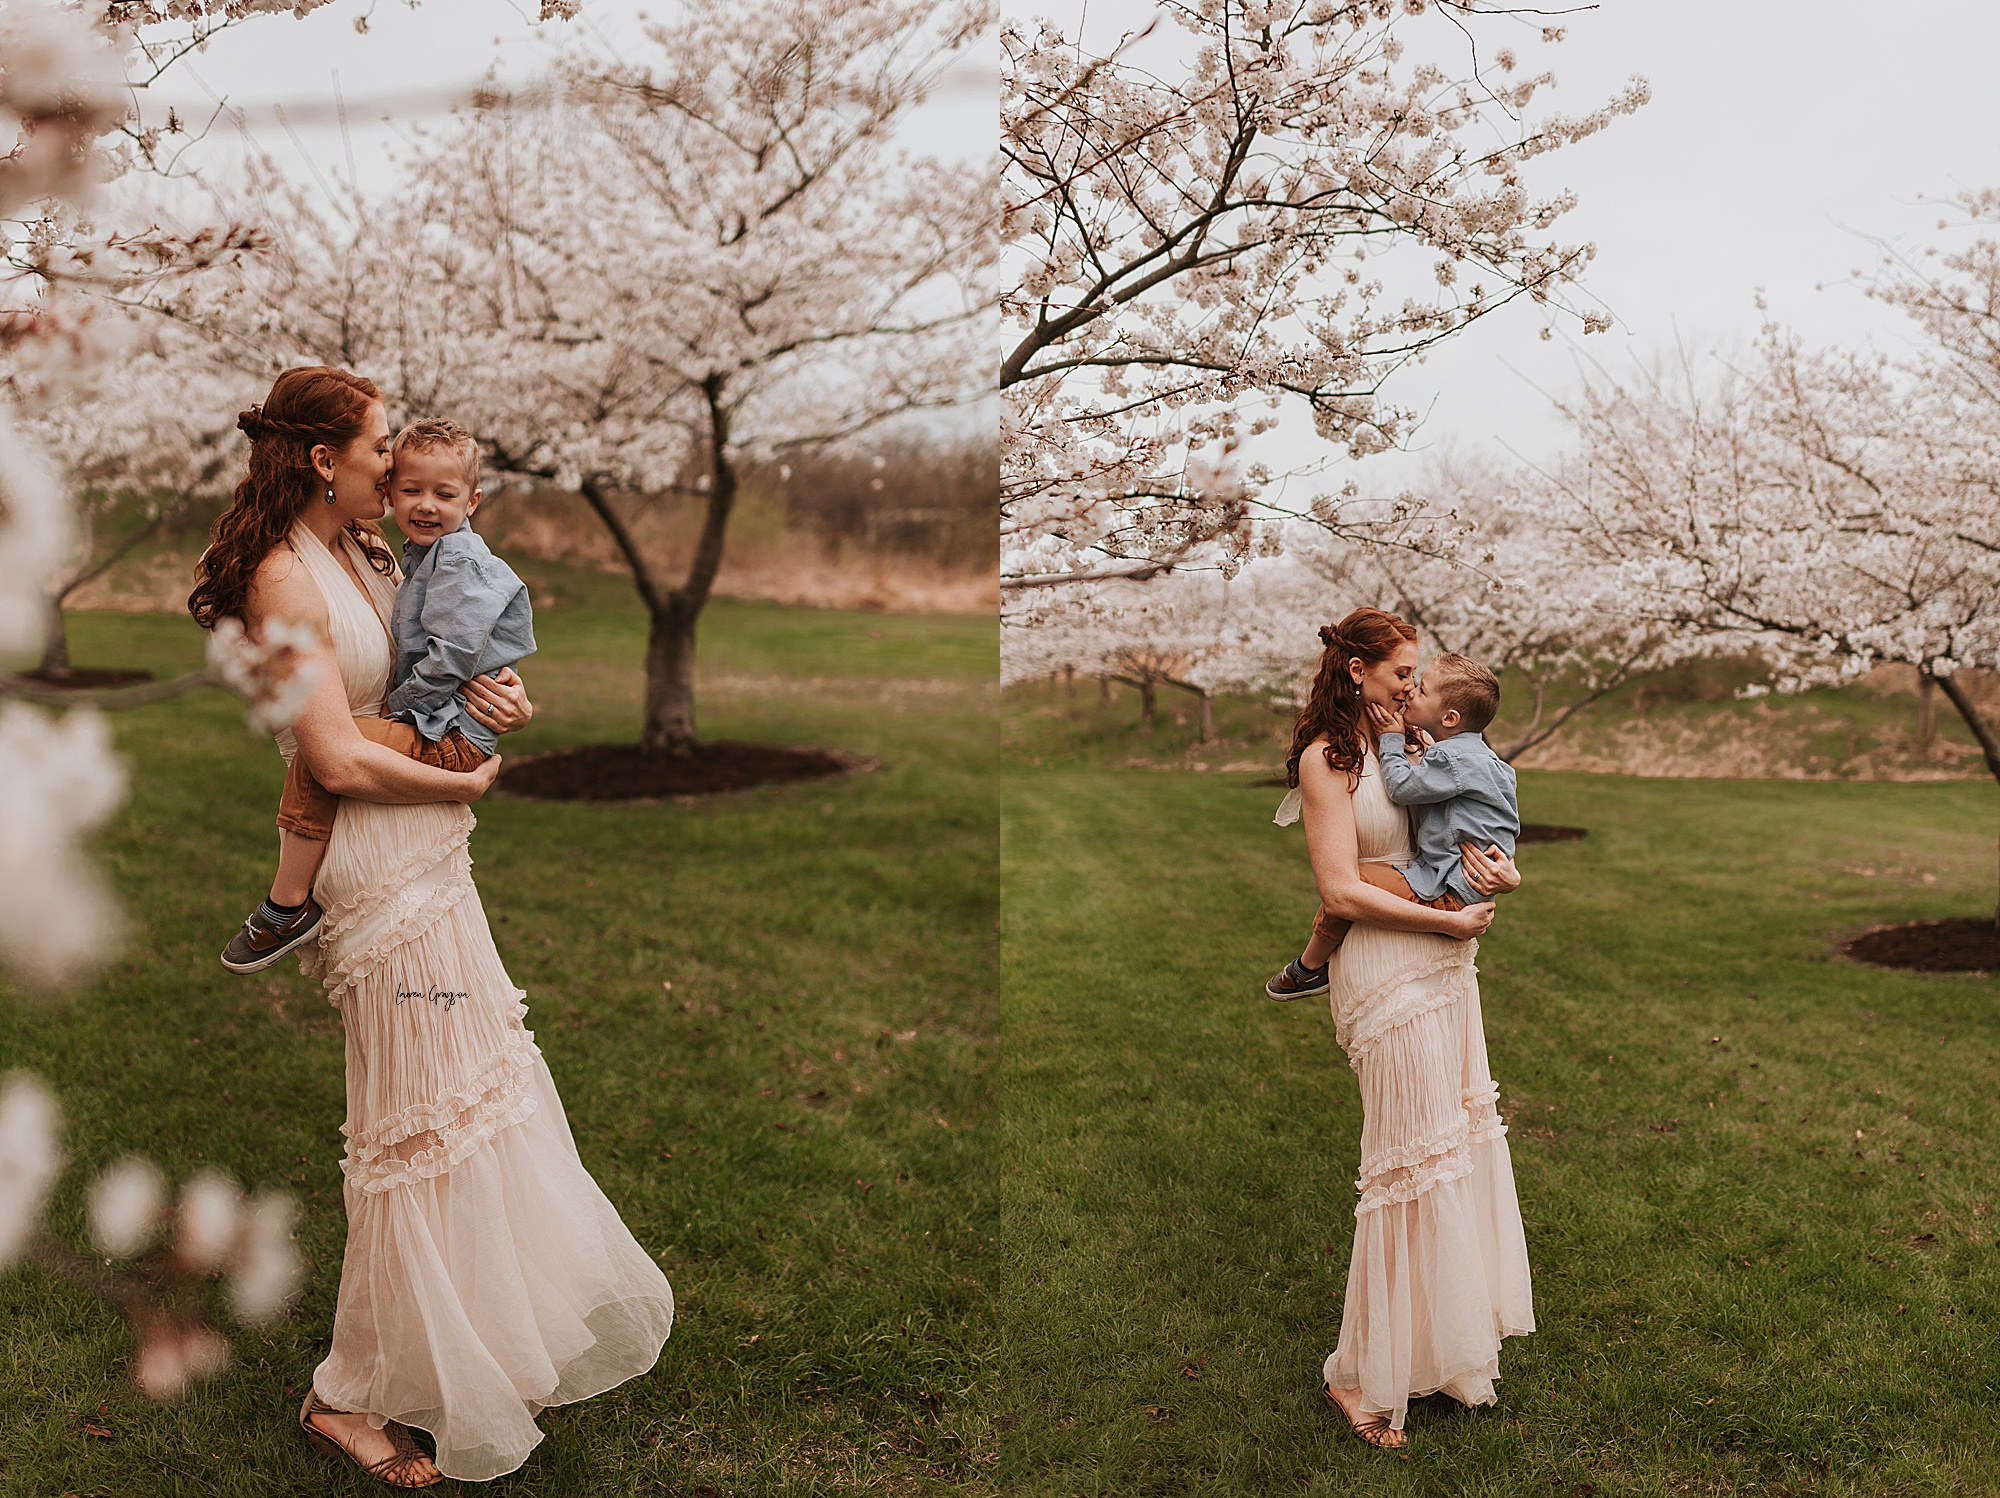 lauren-grayson-photography-cleveland-ohio-motherhood-family-child-photo-session-cherry-blossoms_0011.jpg